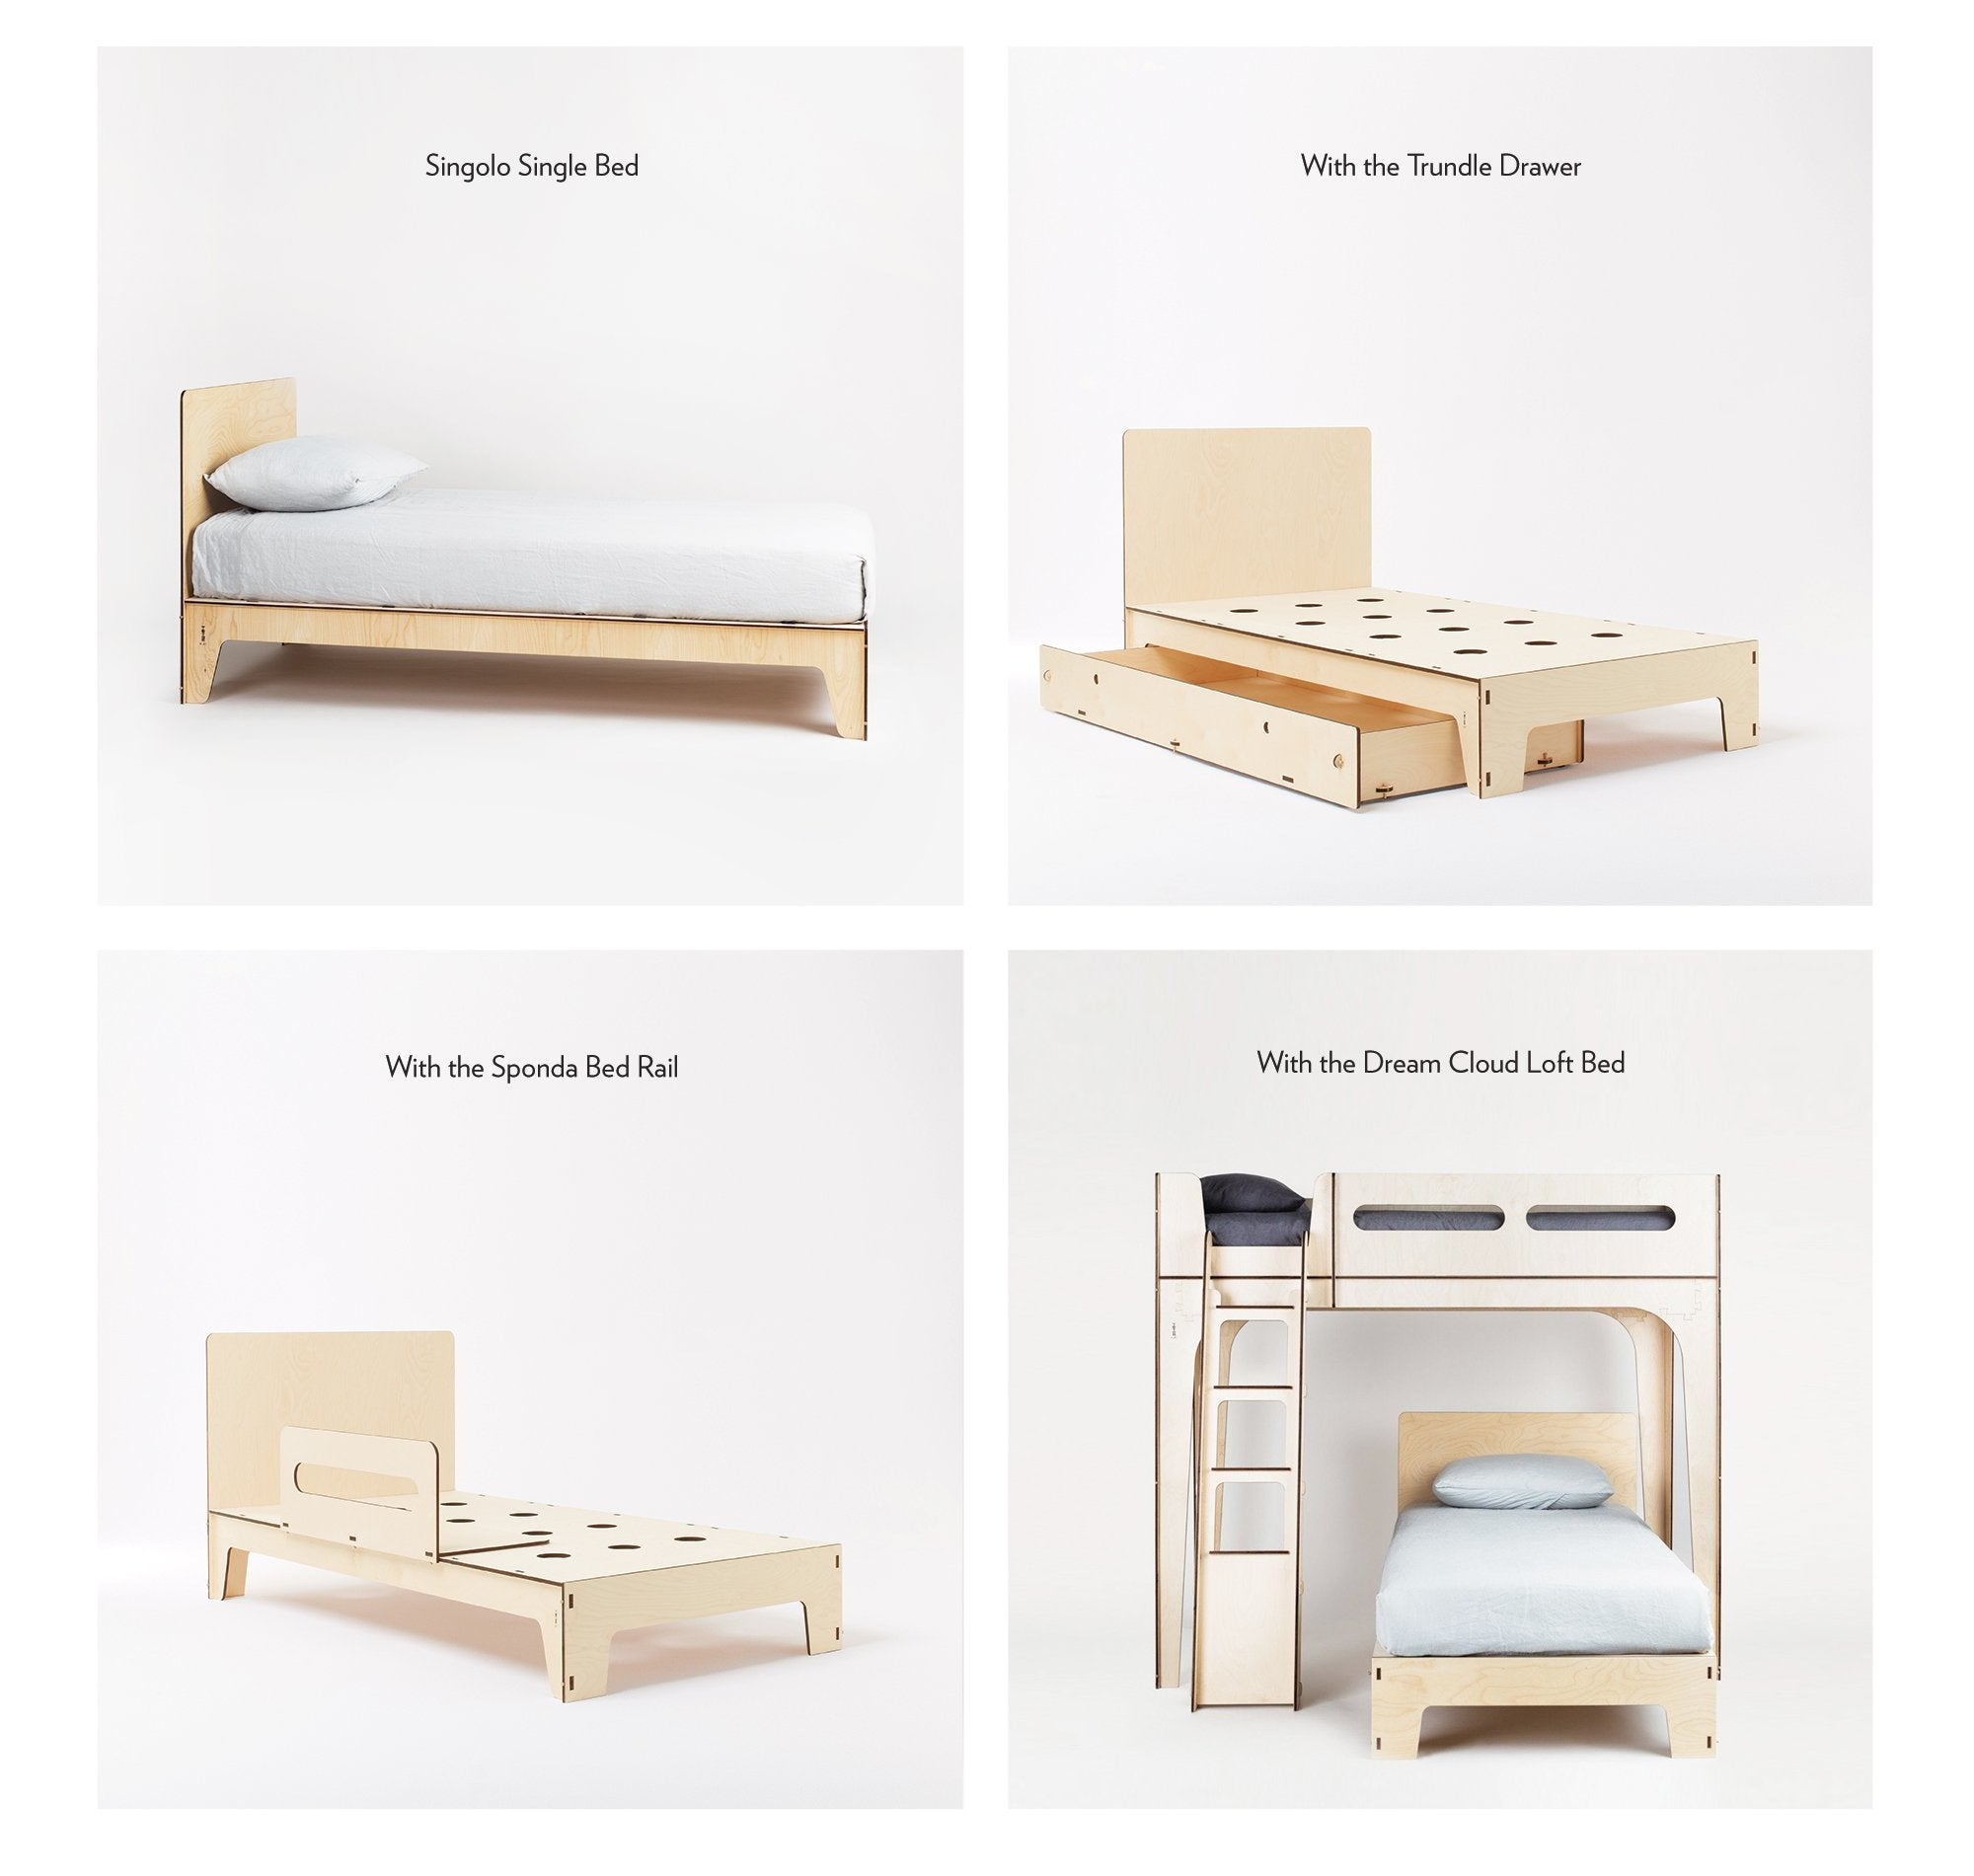 Plyroom Singolo Single Bed maximises space with a trundle drawer